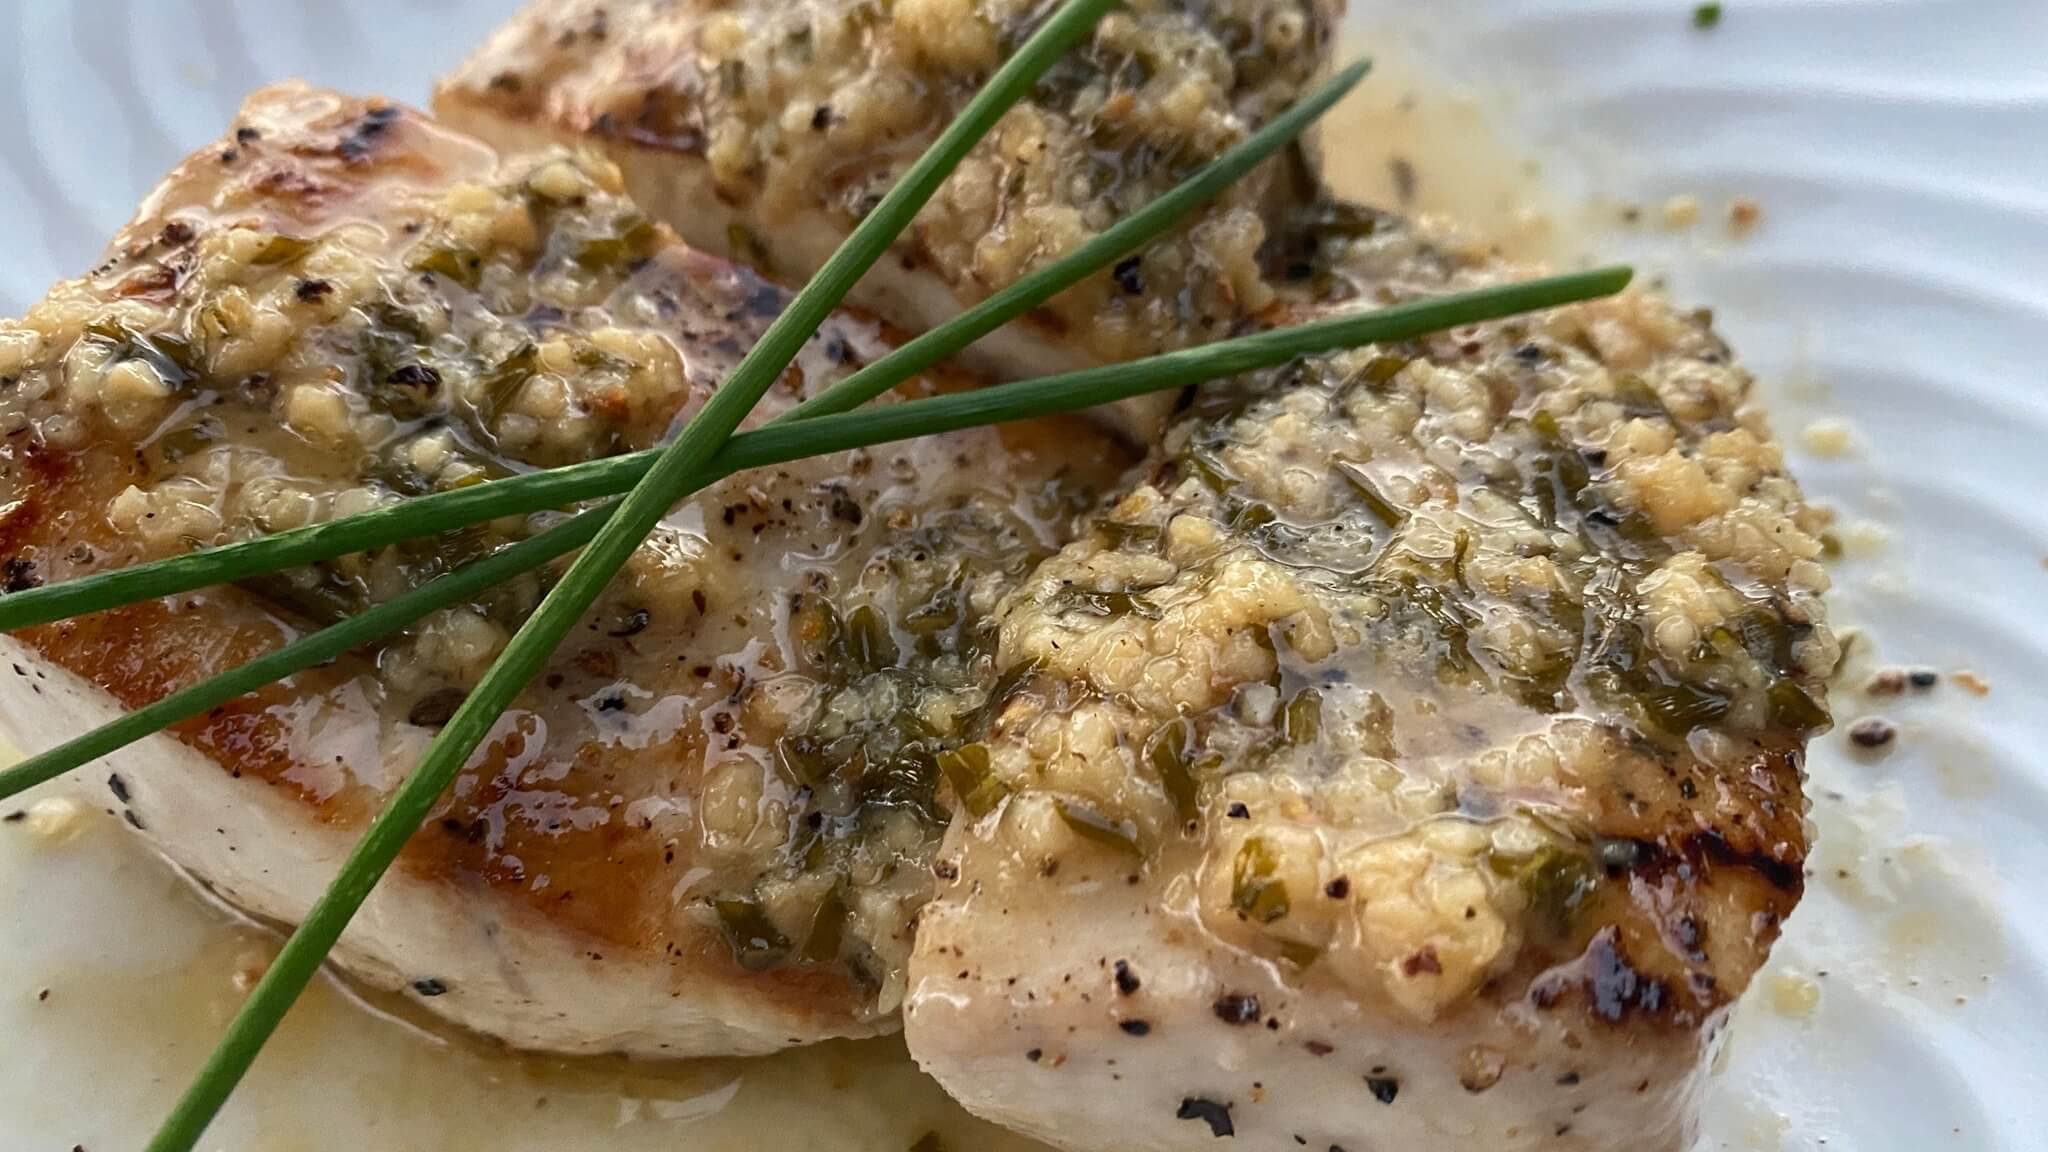 Mahi Mahi with Lemon Garlic Sauce